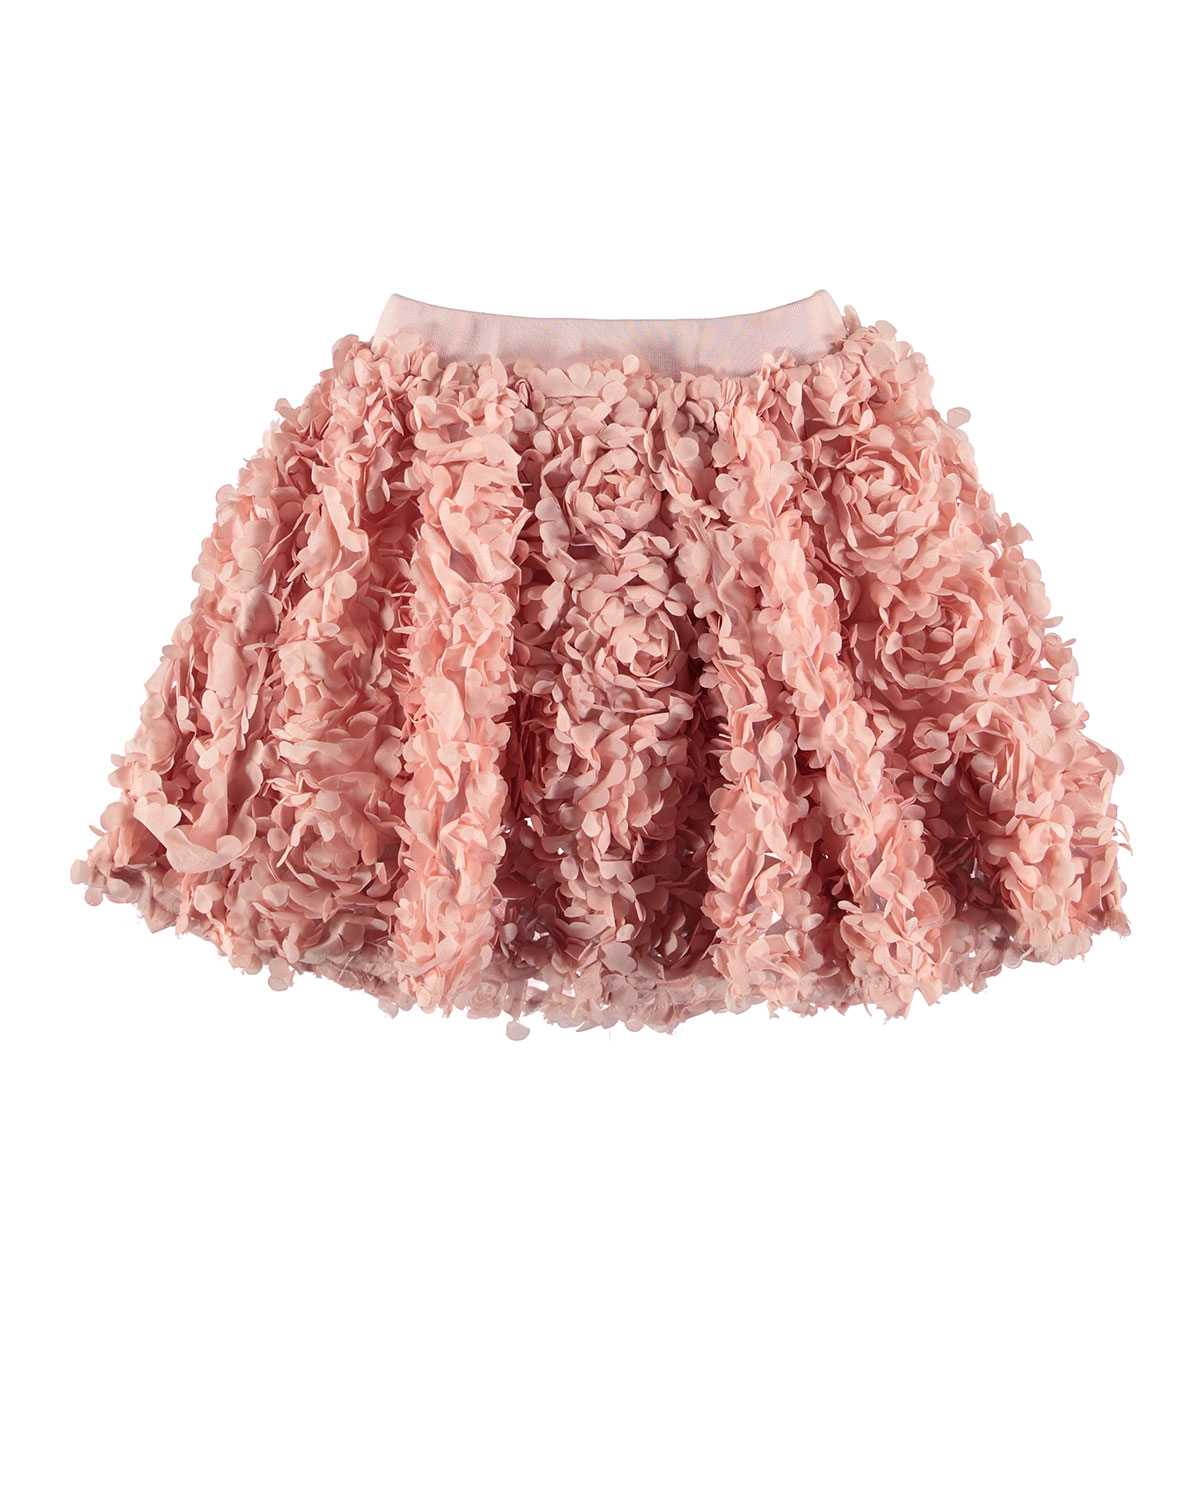 Molo BRICKLY 3D FLORAL APPLIQUE A-LINE SKIRT